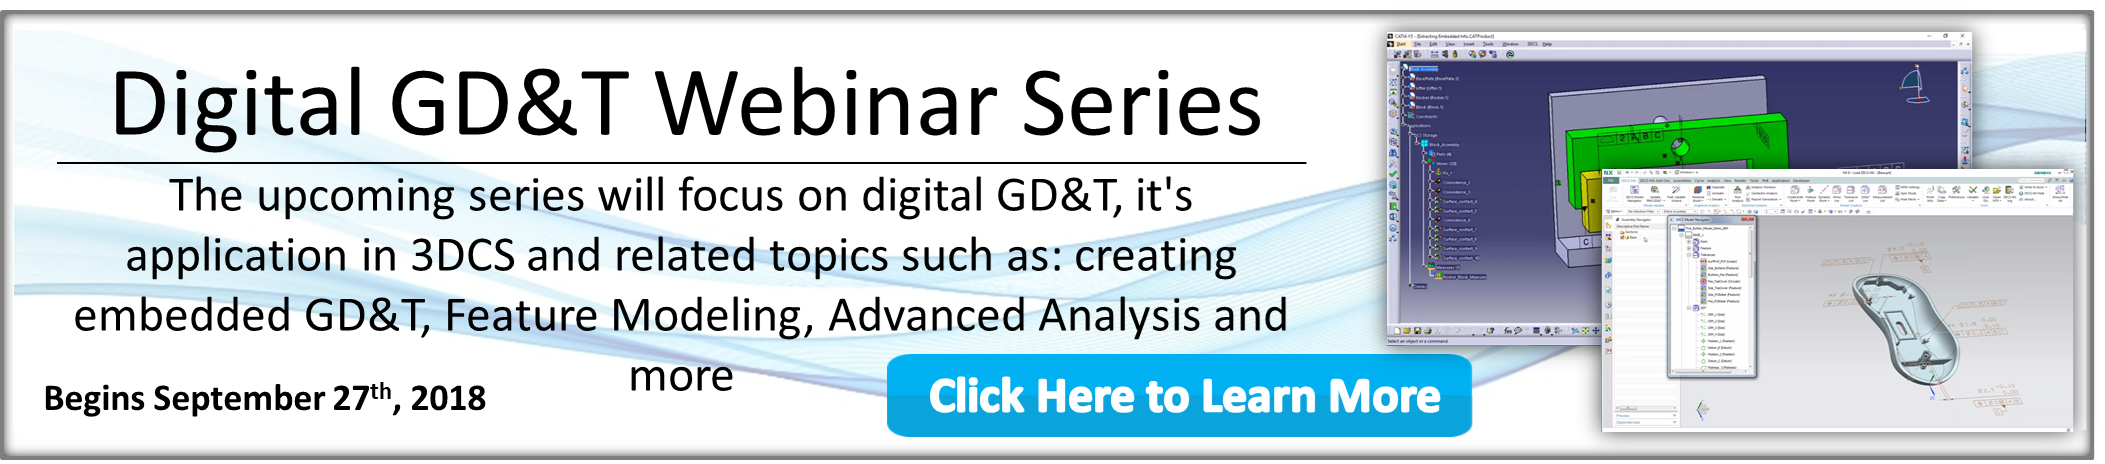 Digital GD&T Webinar Series